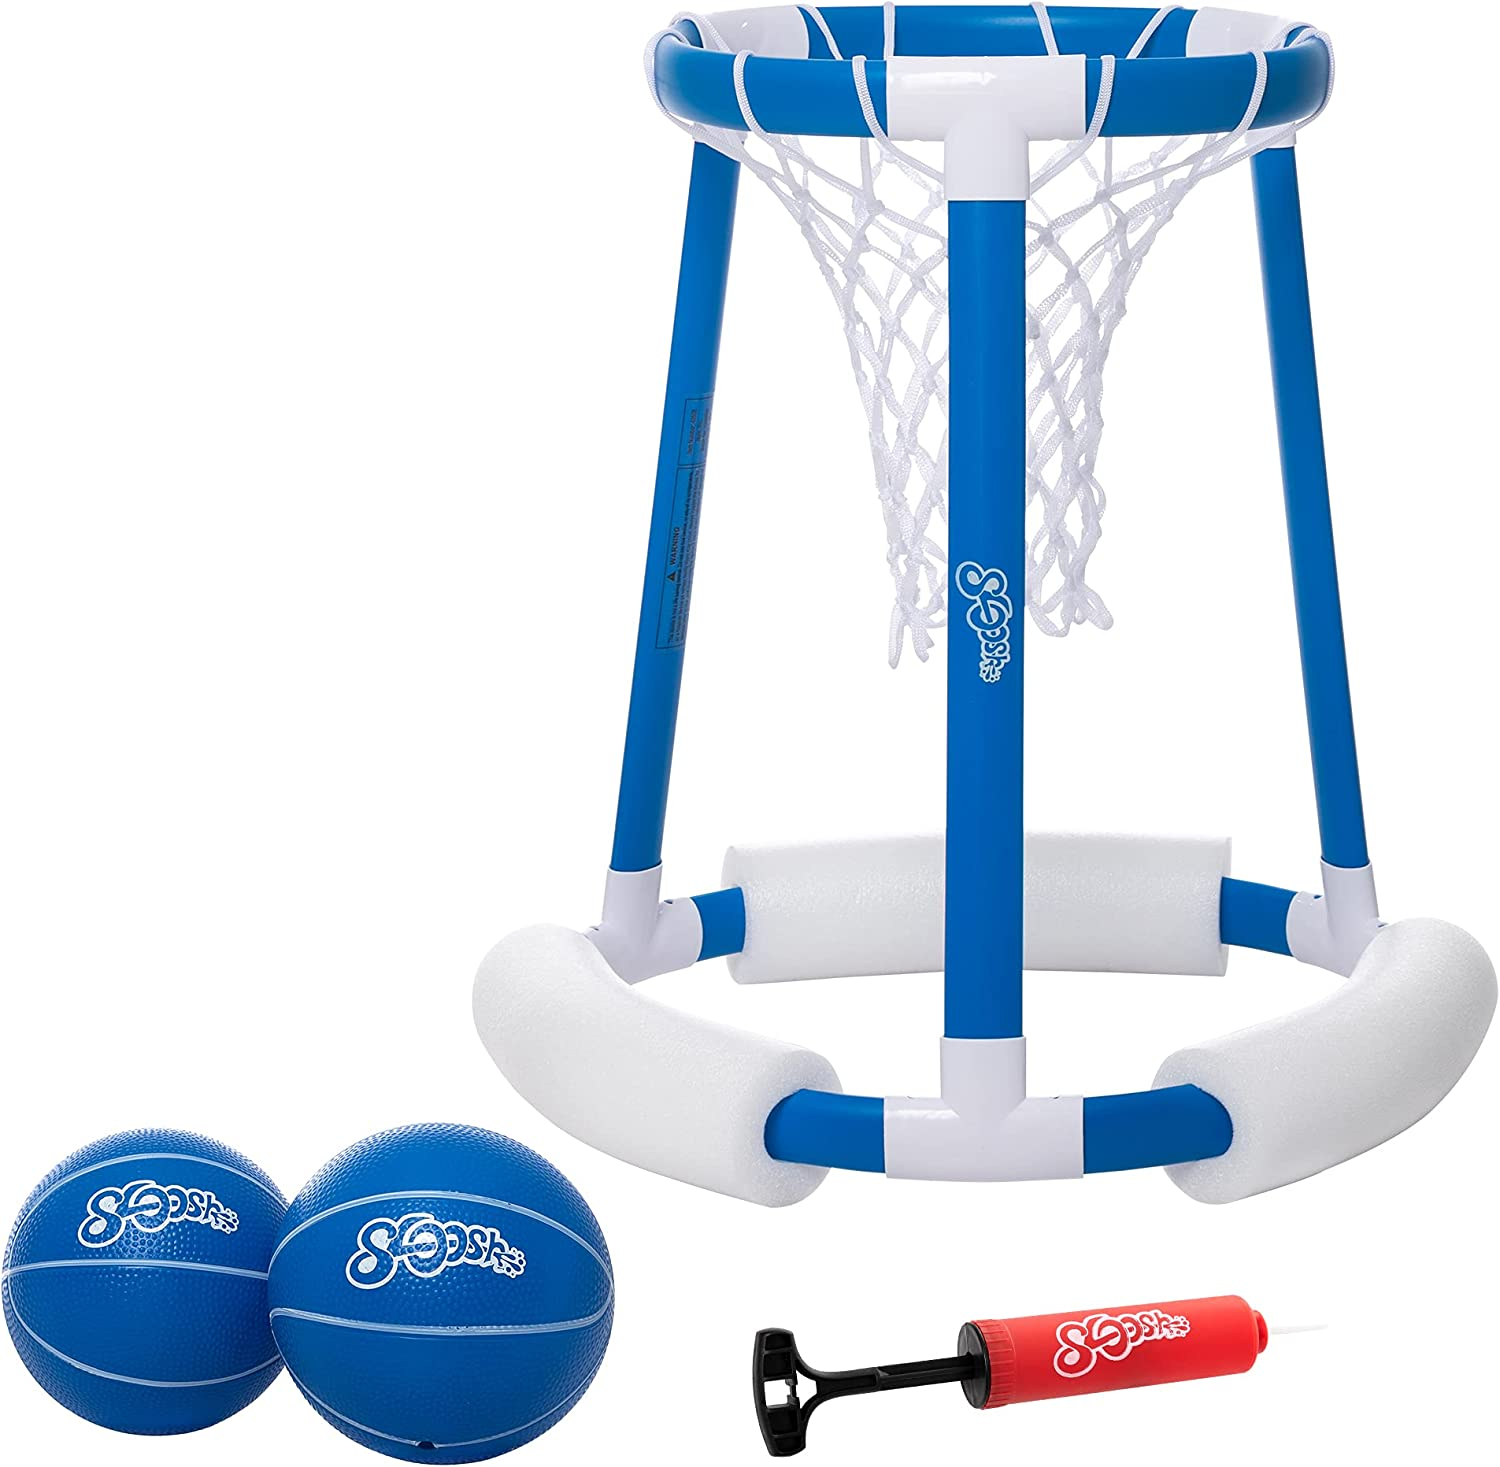 Floating Pool Basketball Hoop Game for Swimming Pool   Includes Hoop, 2 Balls and Pump,Inflatable Basketball Hoop Water Basketball Game Pool Toys for Kids and Adults (Blue): Garden & Outdoor